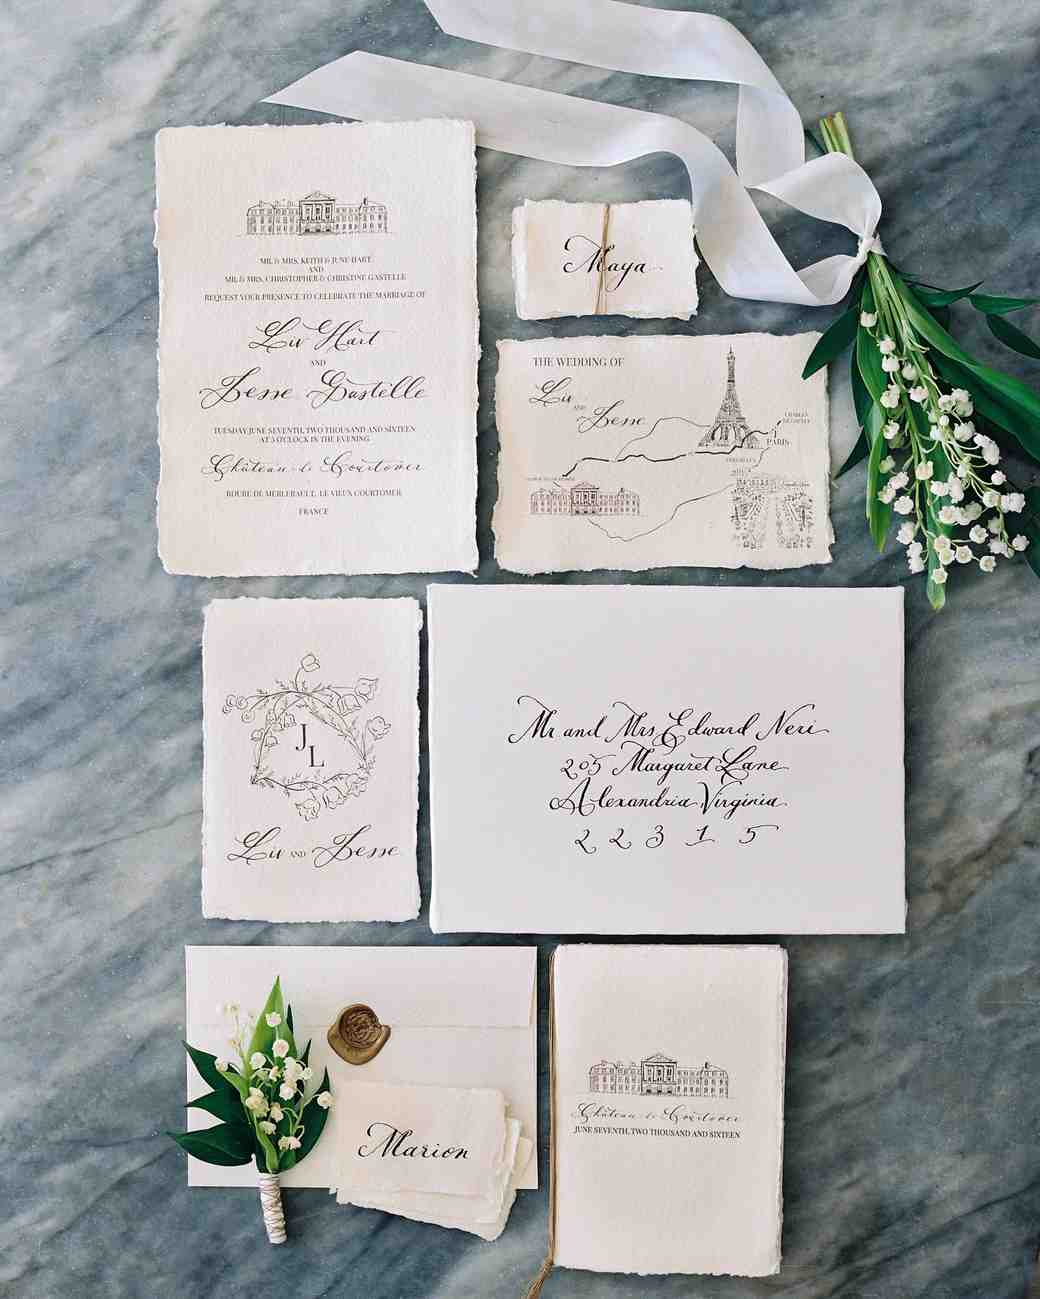 deckle edge invitations laura gordon photography